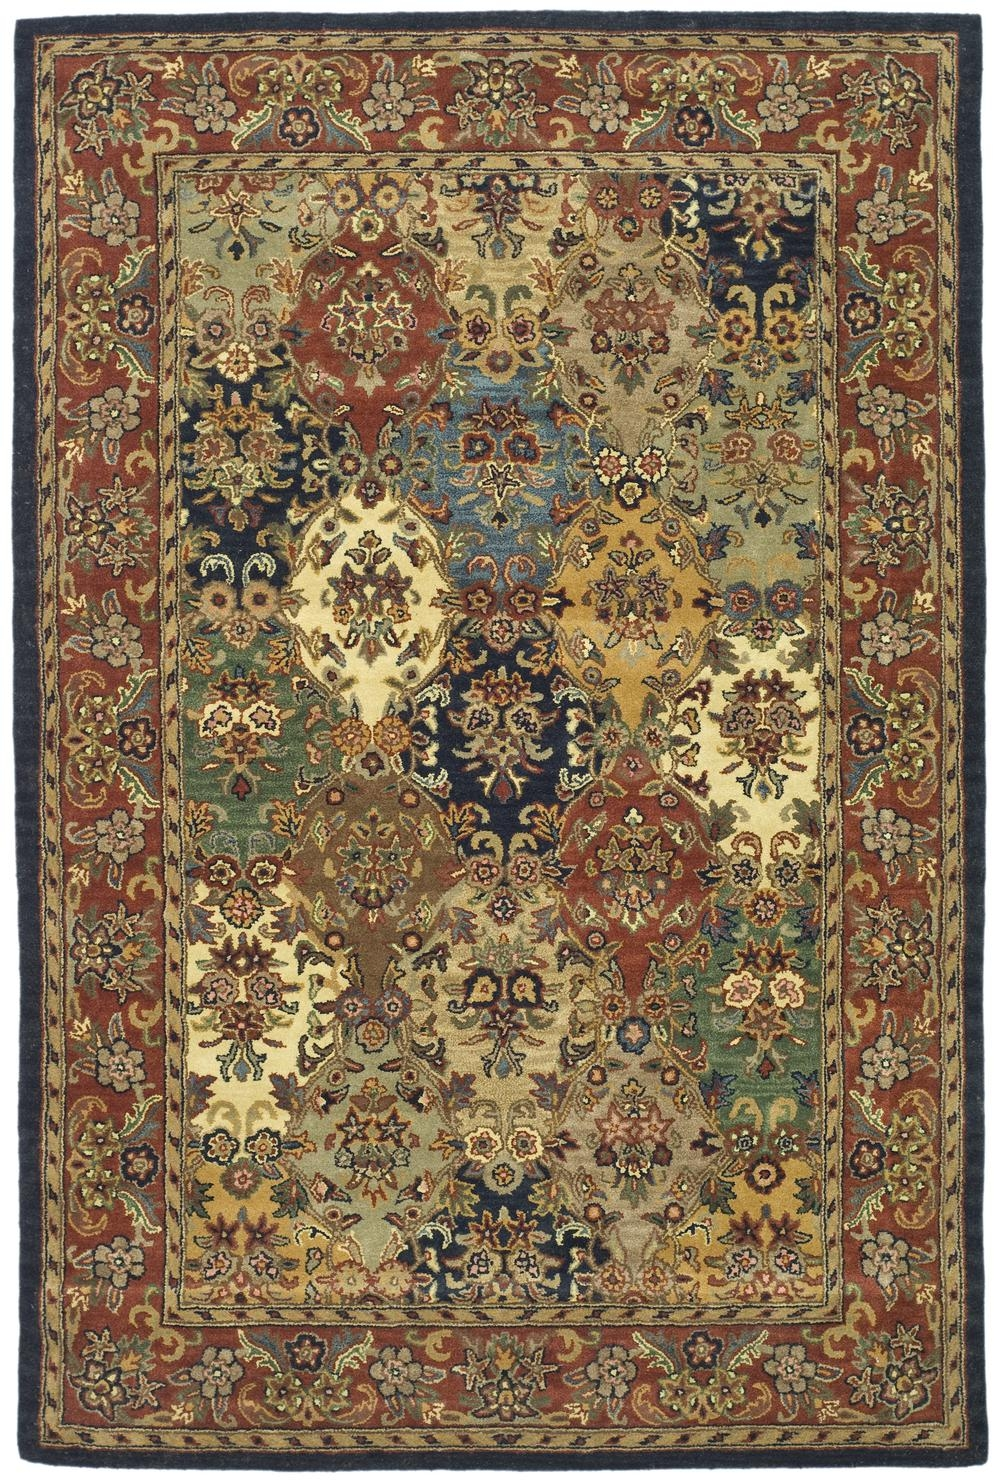 Discount Wool Area Rugs Starting At 13 Free Shipping Bold Rugs Within Wool Area Rugs (#3 of 15)